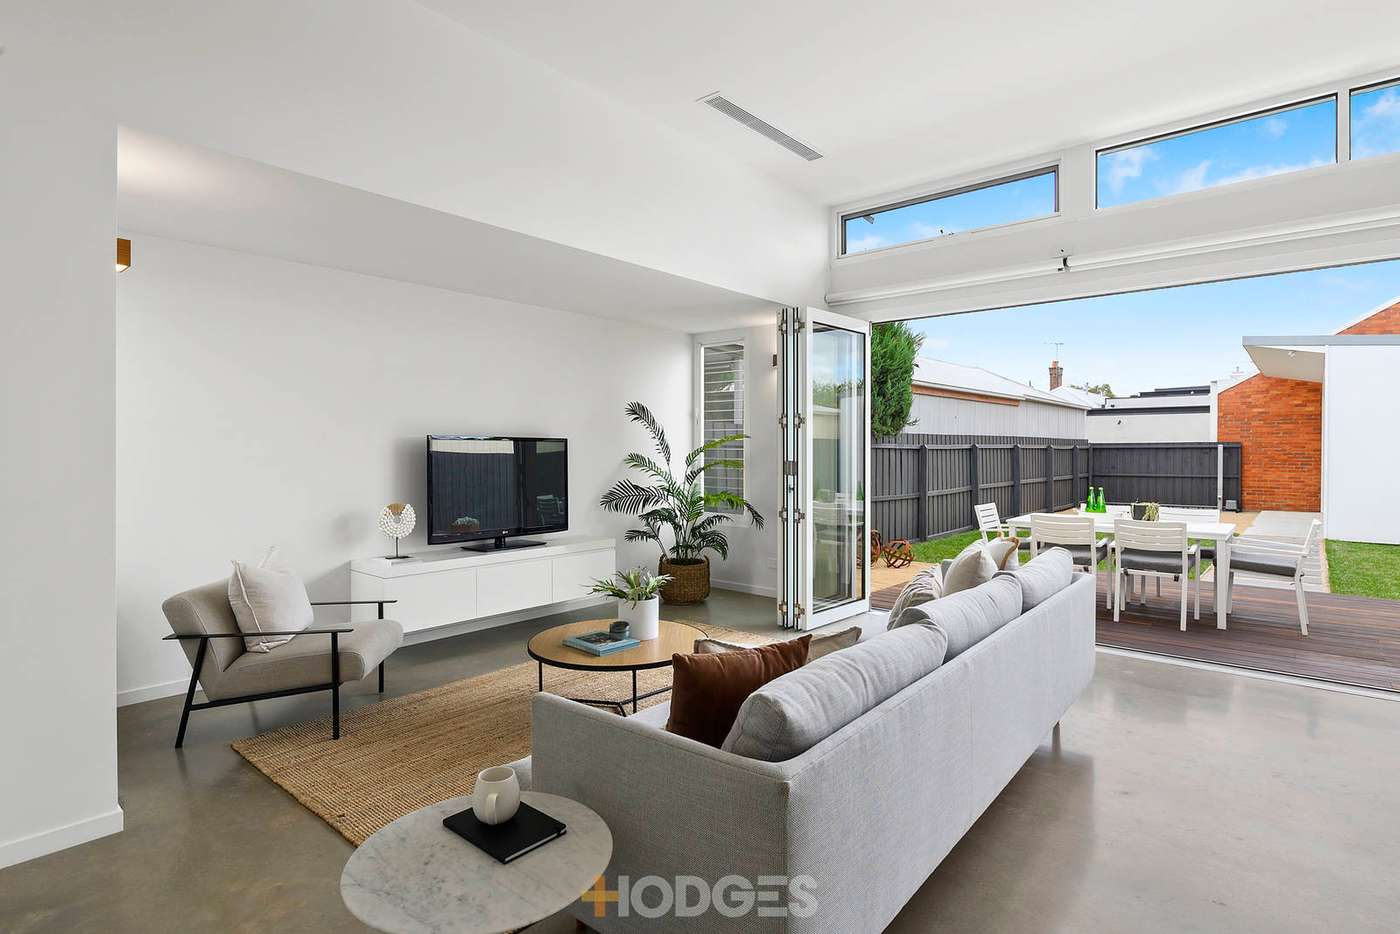 Sixth view of Homely house listing, 28 Candover Street, Geelong West VIC 3218